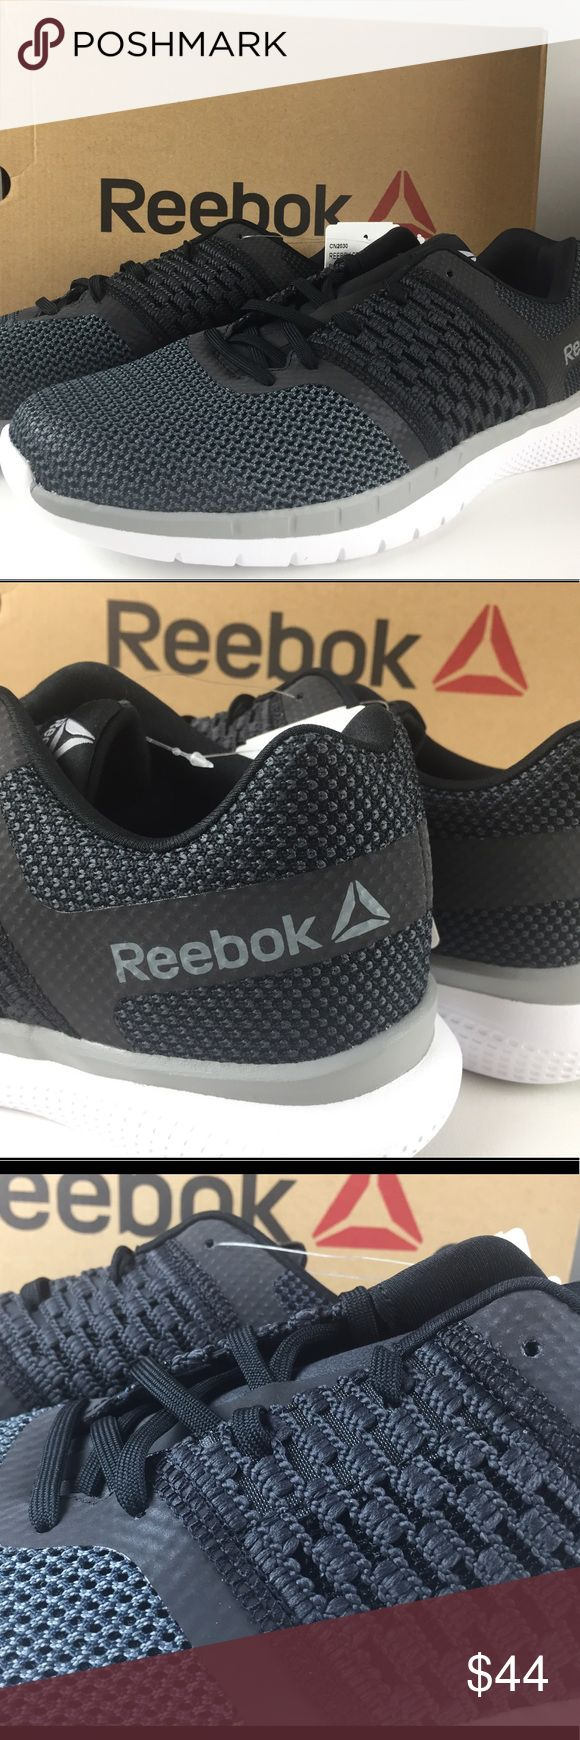 Reebok Print Prime Knit Runner Men's Shoes New NIB Athletic / running shoe from Reebok  🔹Prime Runner style 🔹Memorytech insole 🔹Knit mesh style  Brand new in box so price pretty firm. Let us know if you have any questions. Reebok Shoes Athletic Shoes